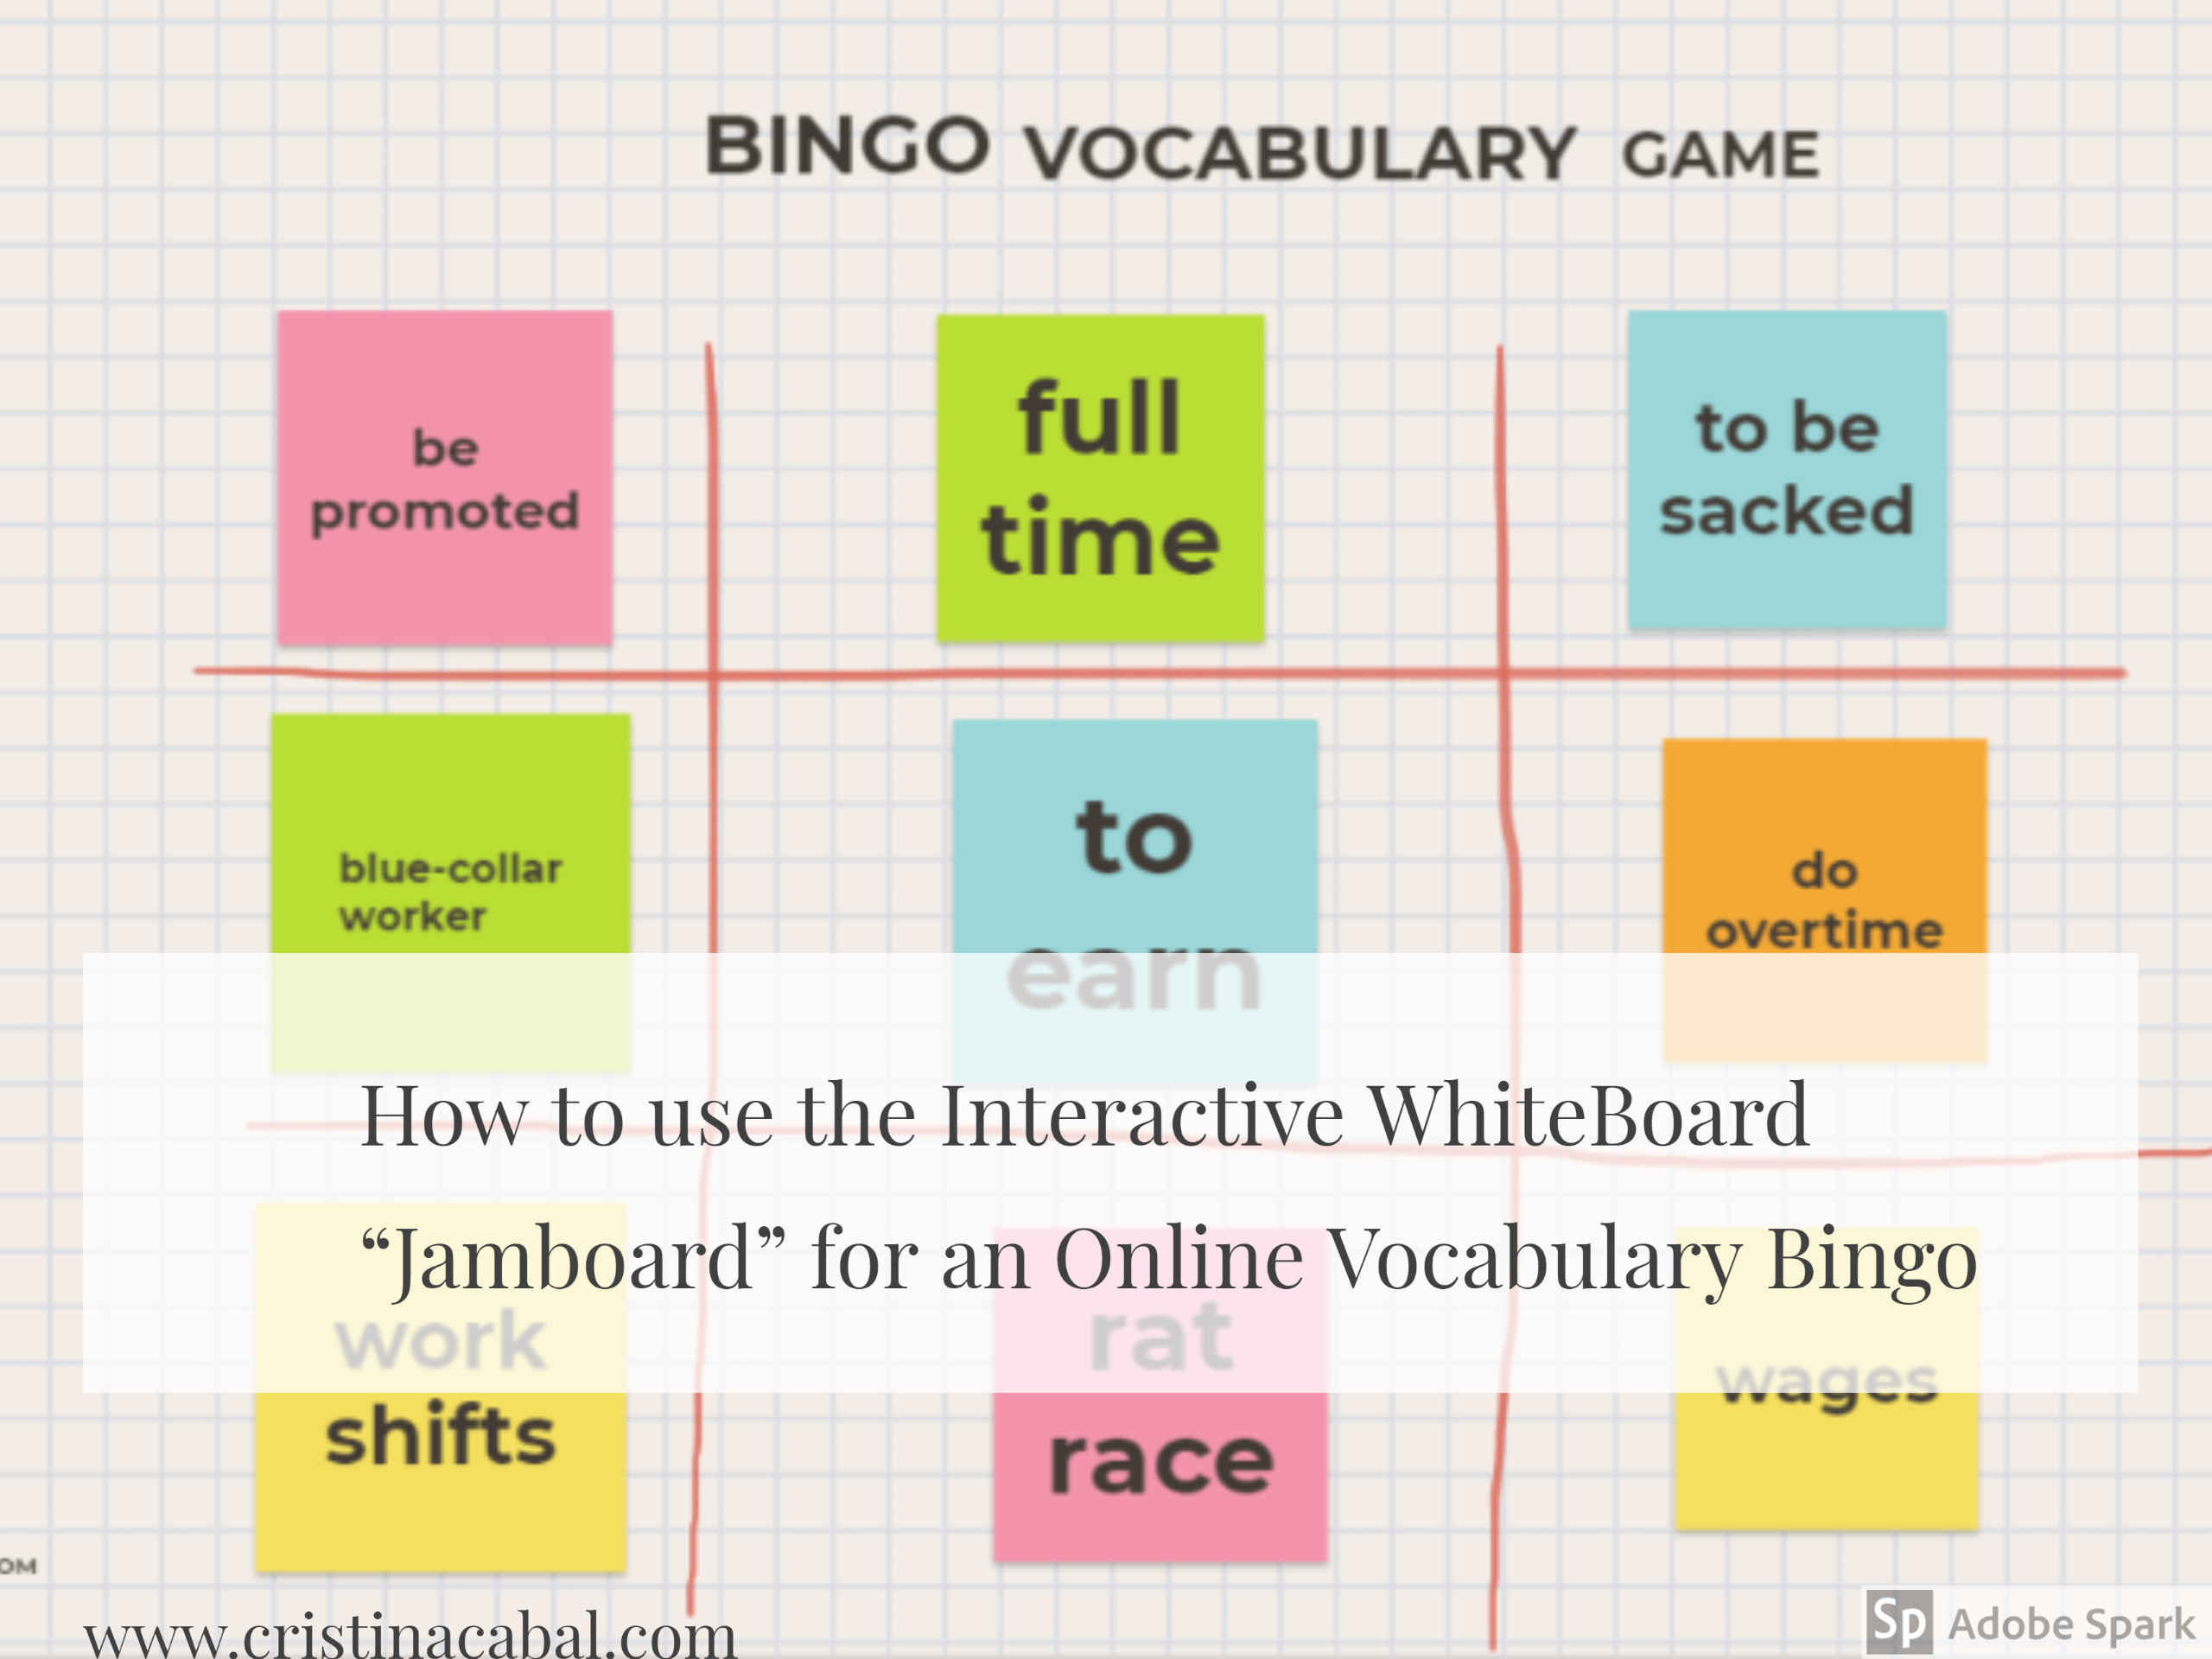 How To Use The Interactive Whiteboard Jamboard For An Online Vocabulary Bingo Vocabulary Virtual Classrooms Online Teaching